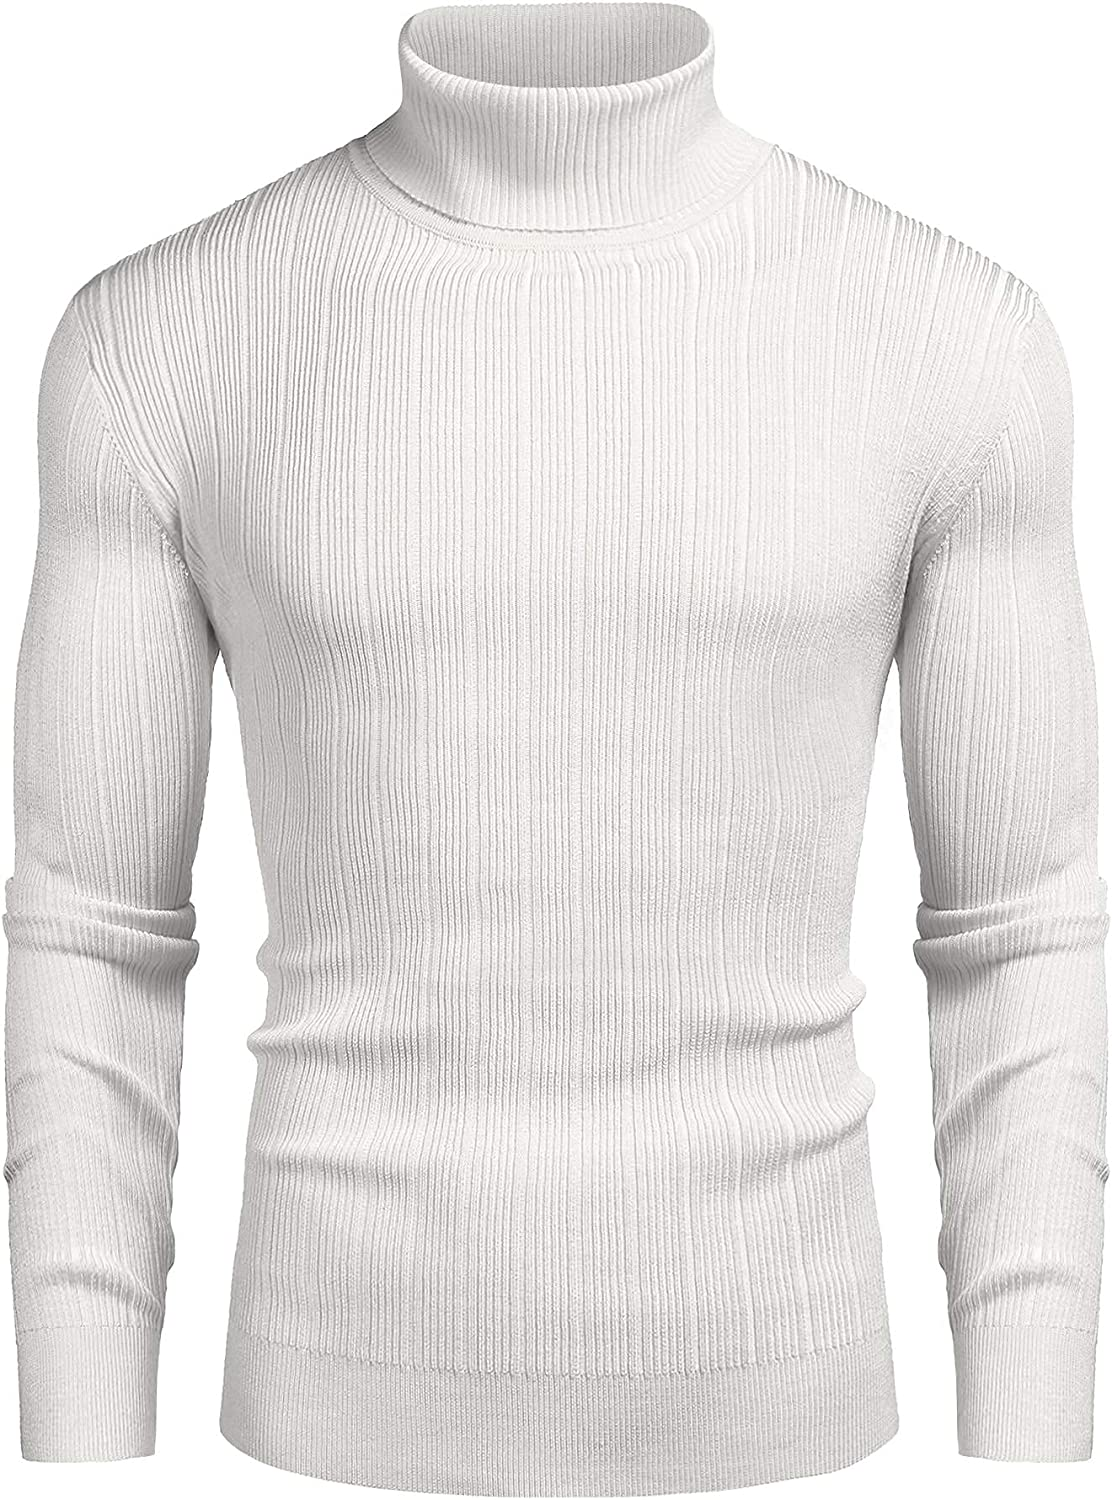 COOFANDY Men's Slim Fit Turtleneck Sweater Ribbed High Neck Pullover Sweaters